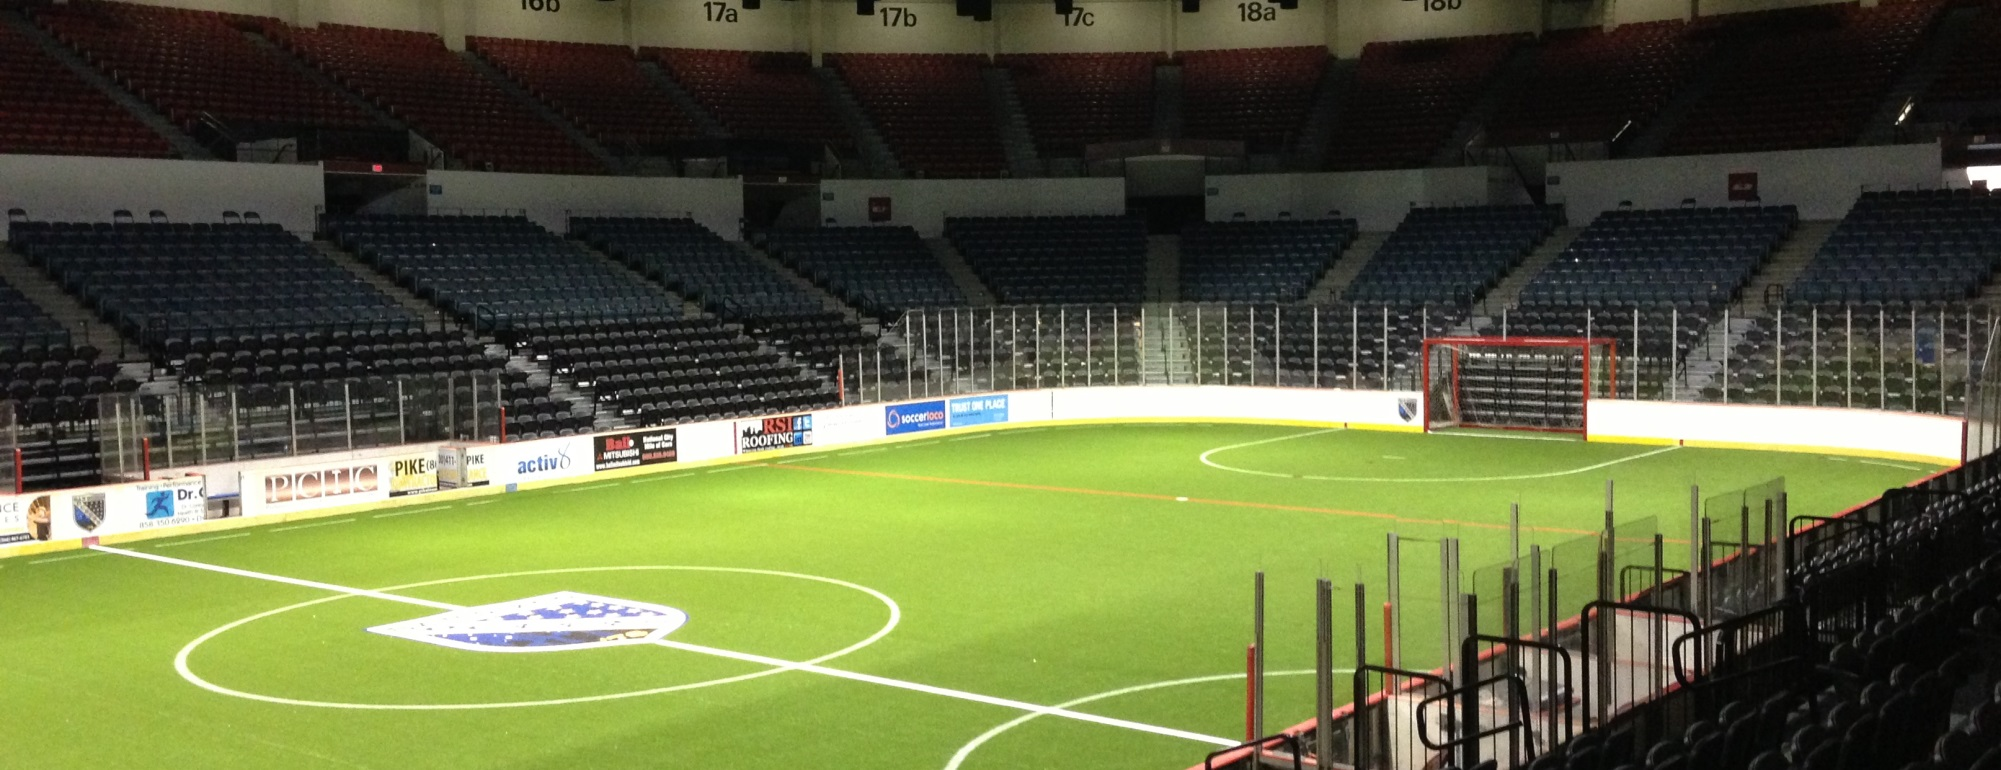 San-Diego-Sockers-Synthetic-Turf